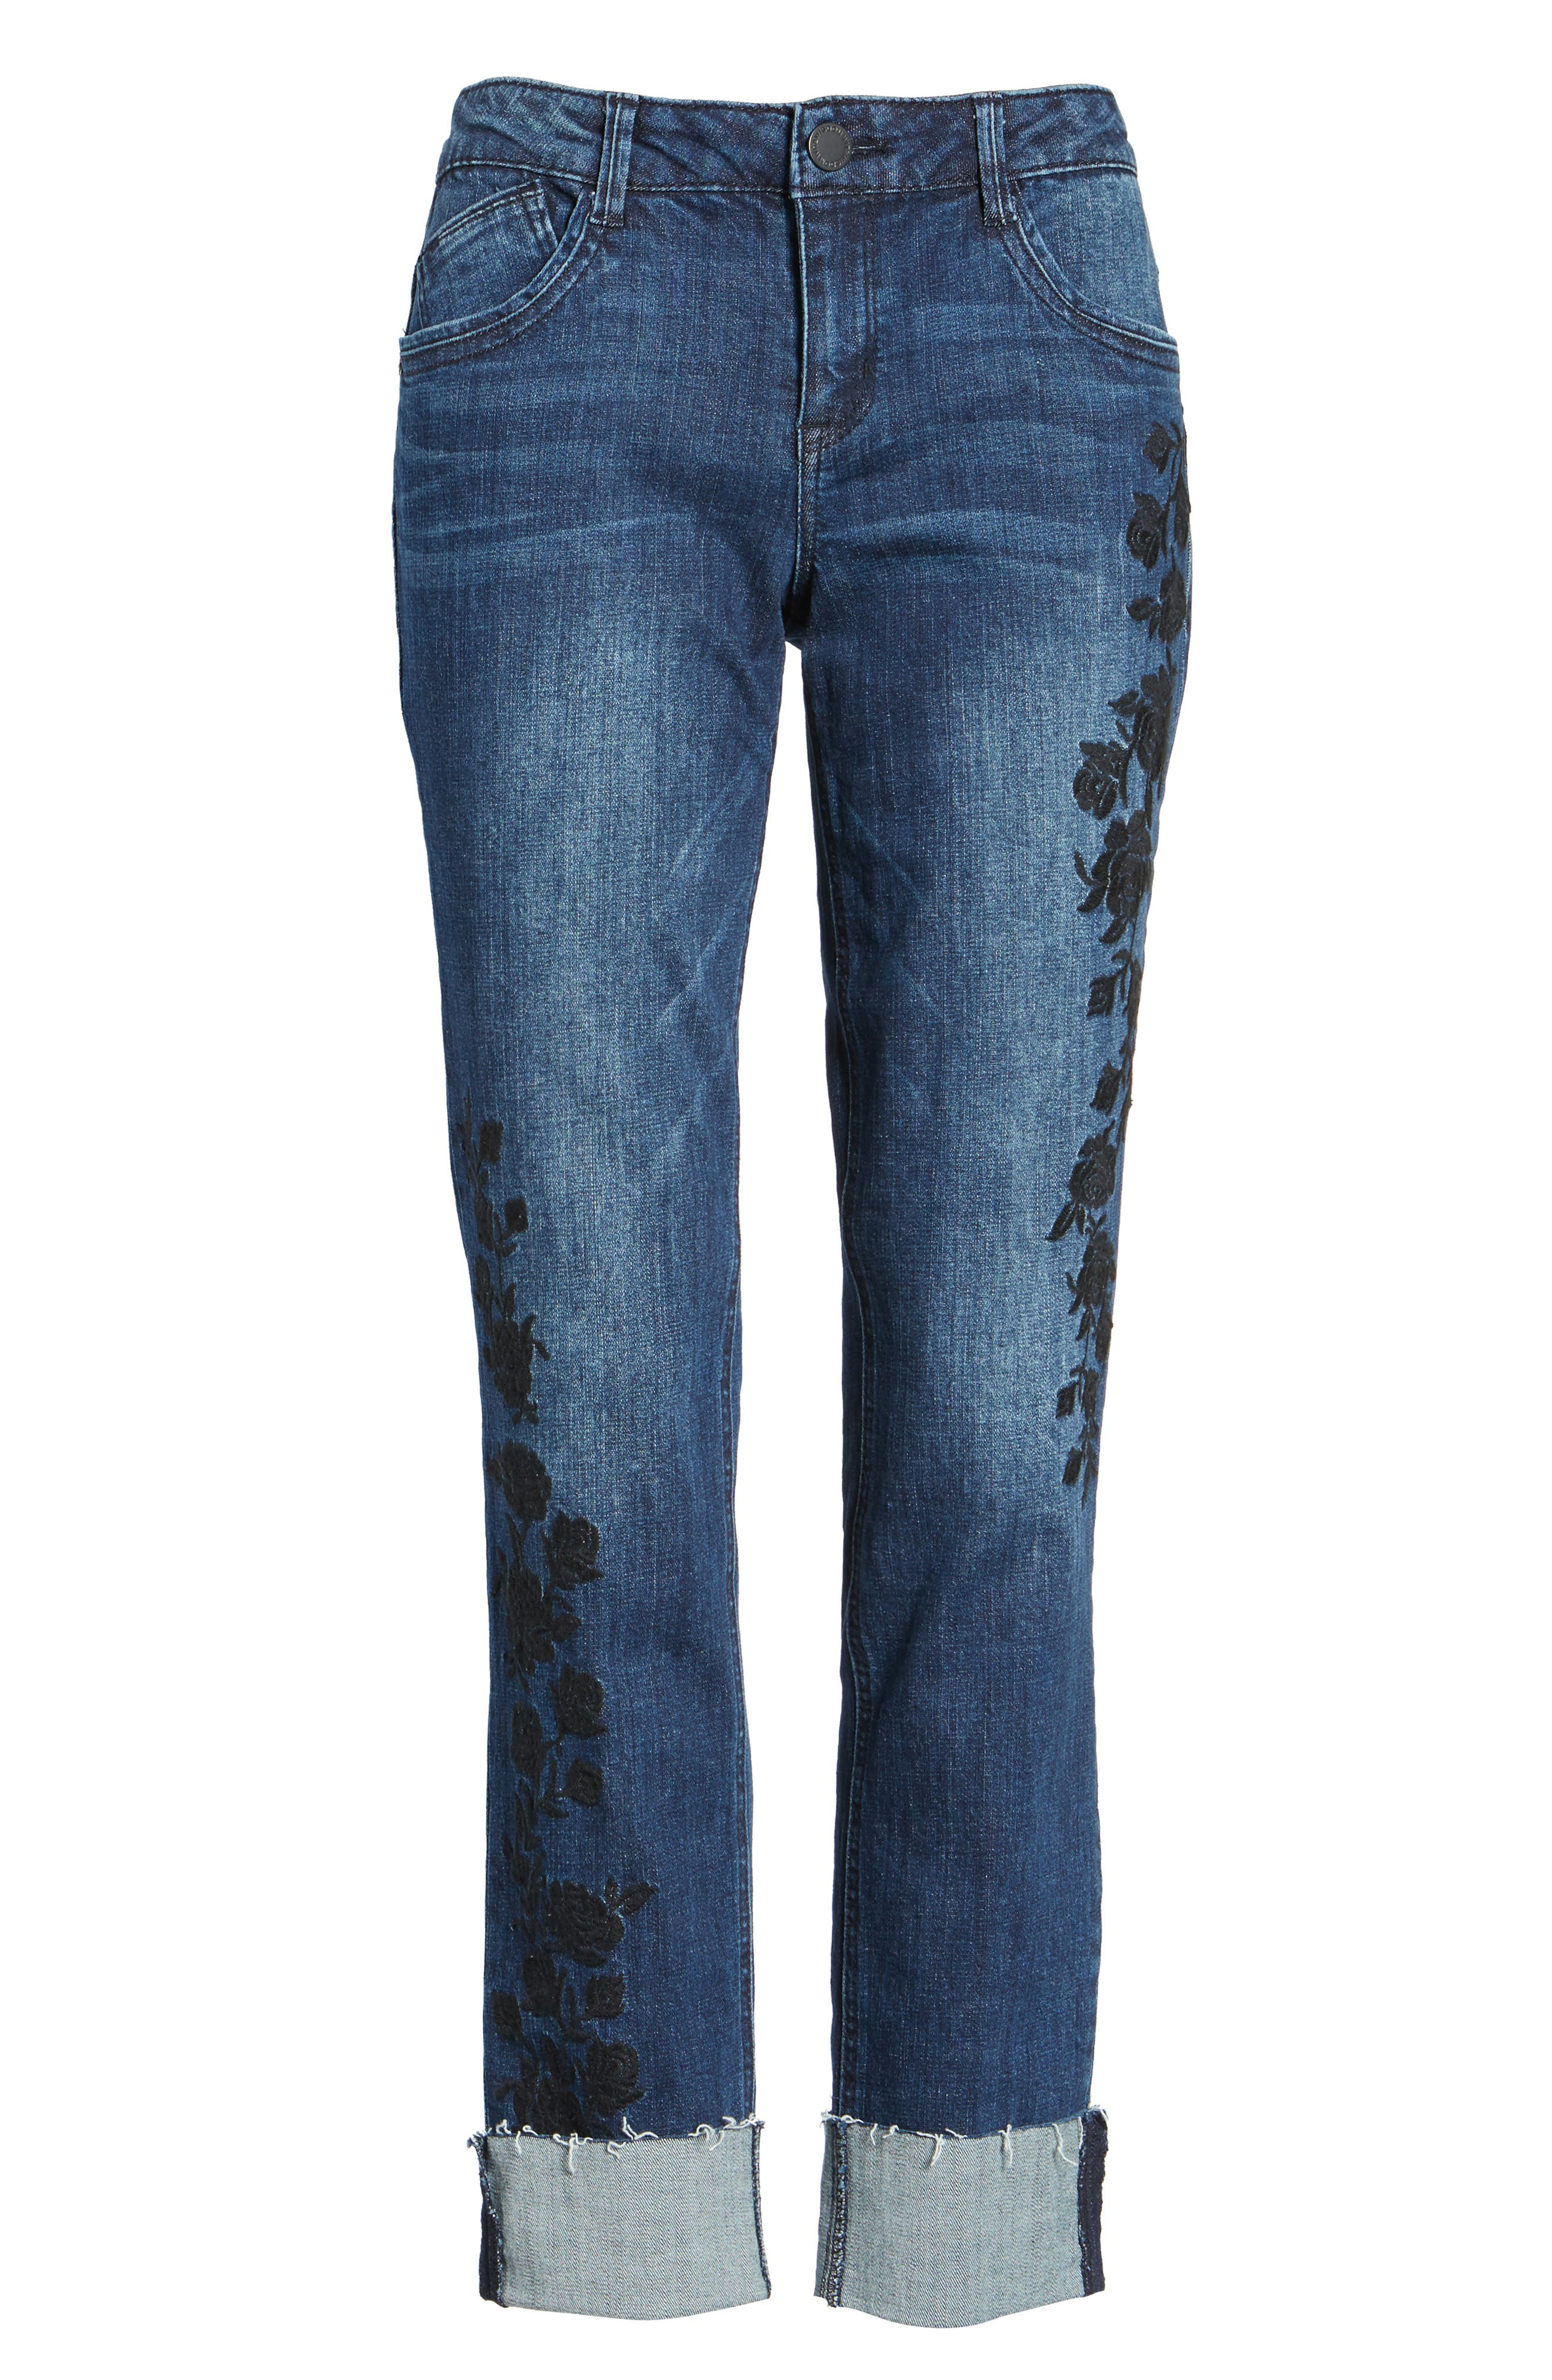 Flexellent Embroidered Boyfriend Jeans,                             Alternate thumbnail 7, color,                             BLUE